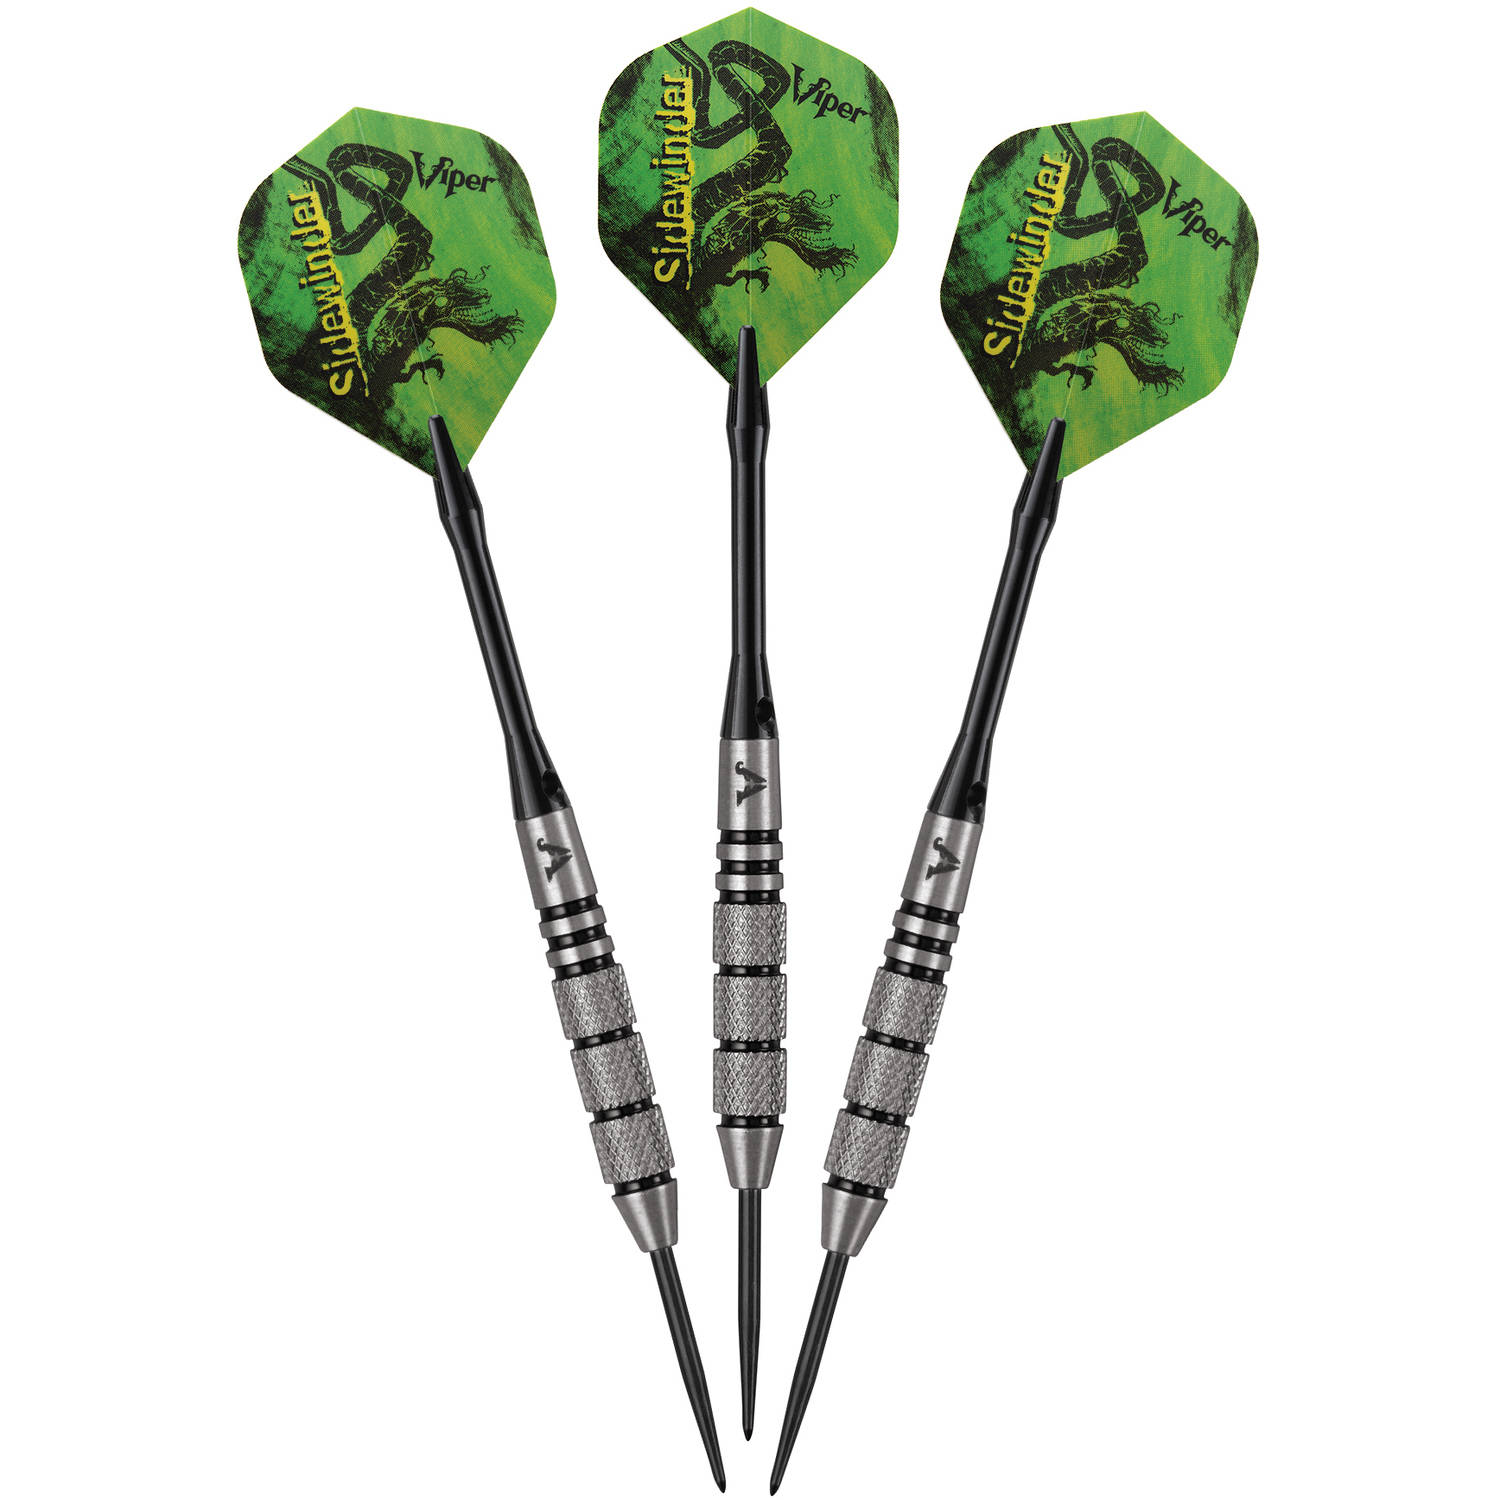 Viper 23g Sidewinder Steel Tip Dart Set 80/% Tungsten 23-1803-23 Flights Shafts